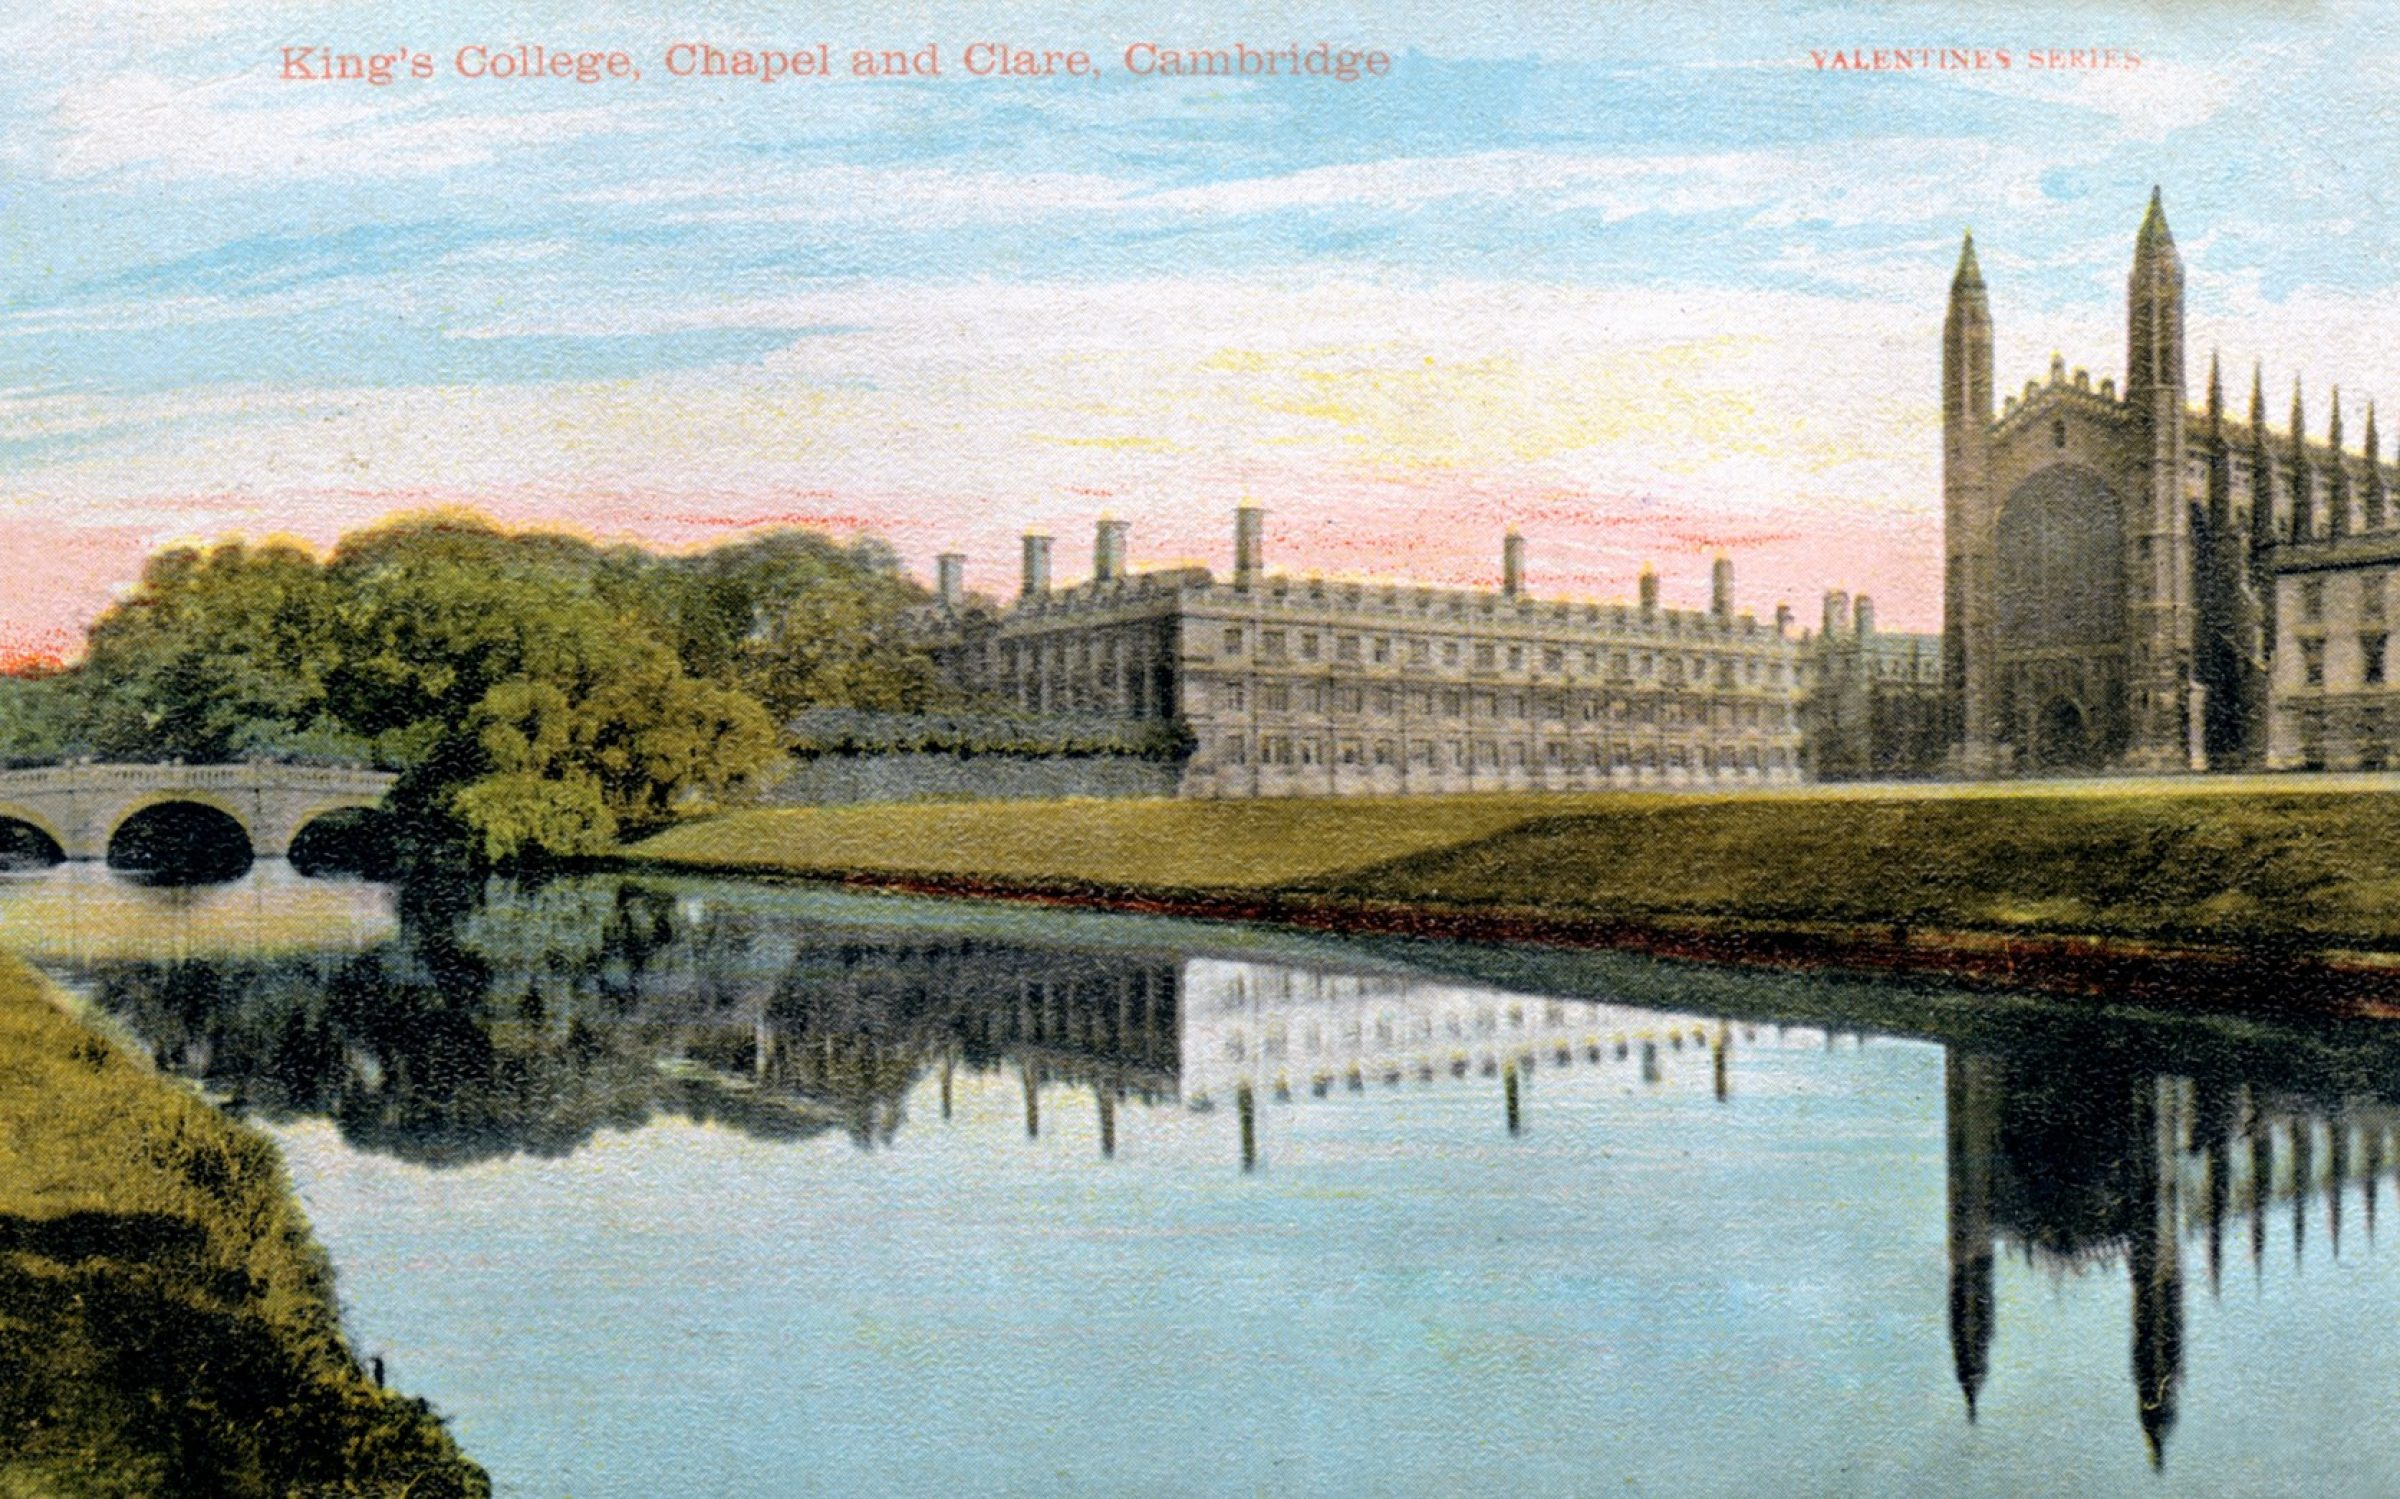 An illustration of King's College banks from the Valentines postcard series. Credit: The Print Collector / Getty Images.